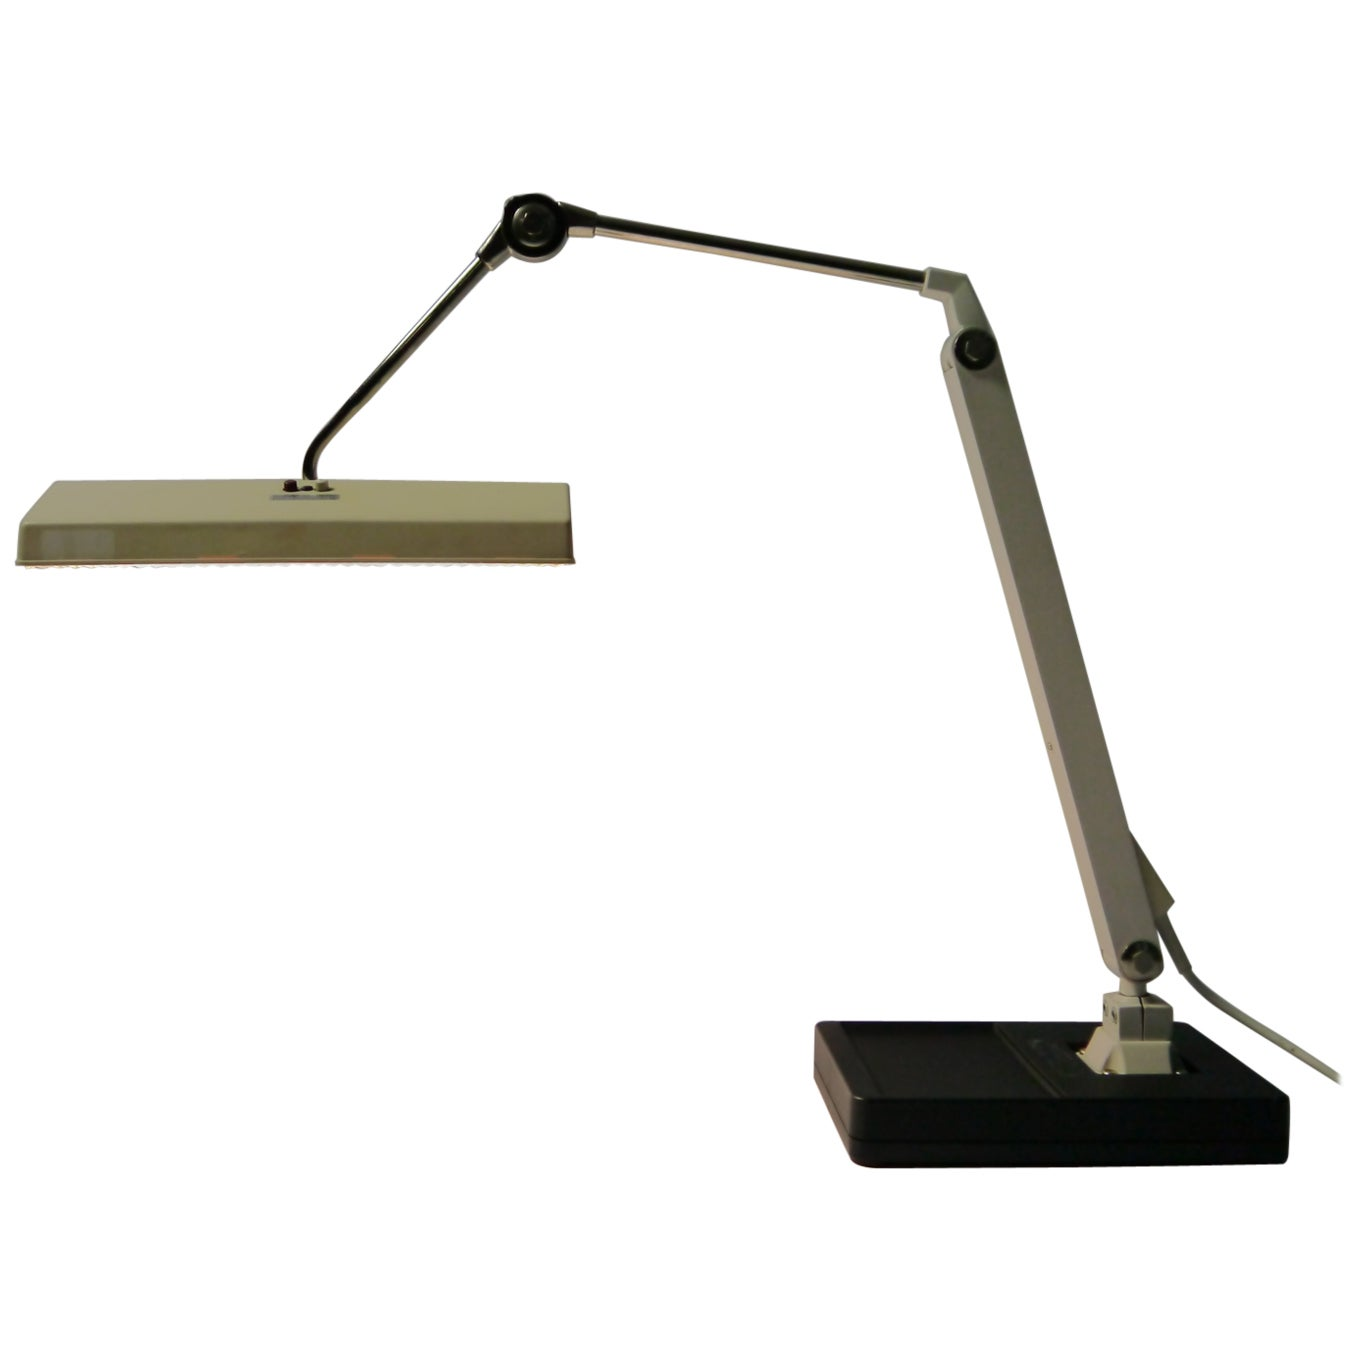 Desk / Office Lamp by Waldmann Leuchten, West Germany, 1960s